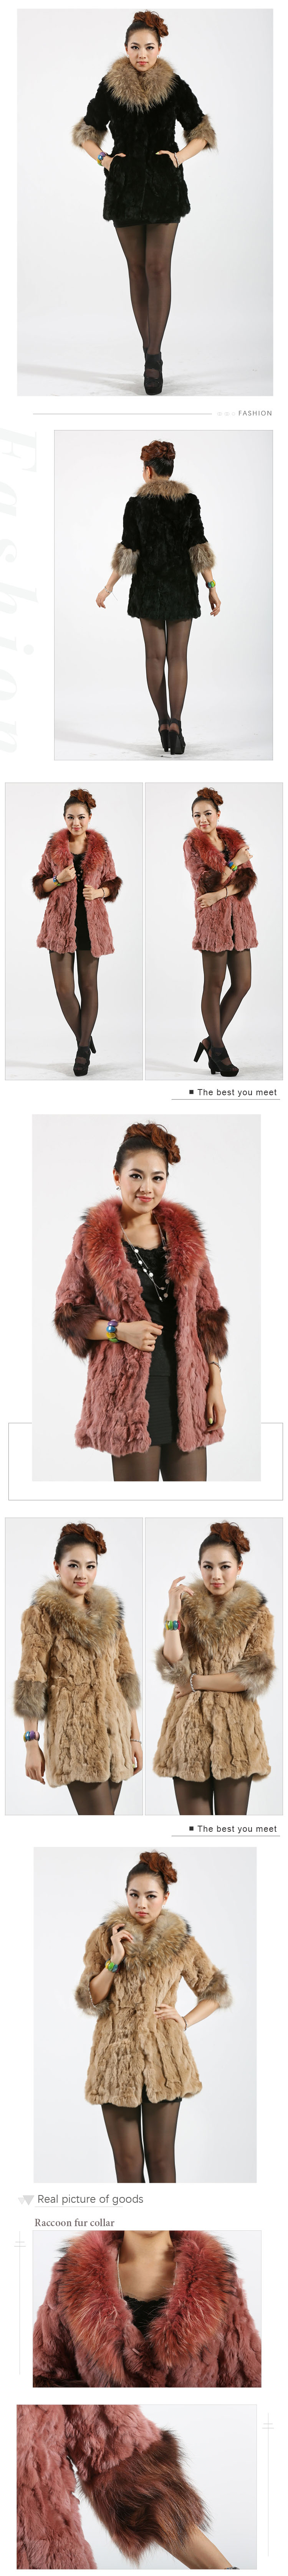 khaki long fur coat ladies winter rex rabbit fur coats with fur collar